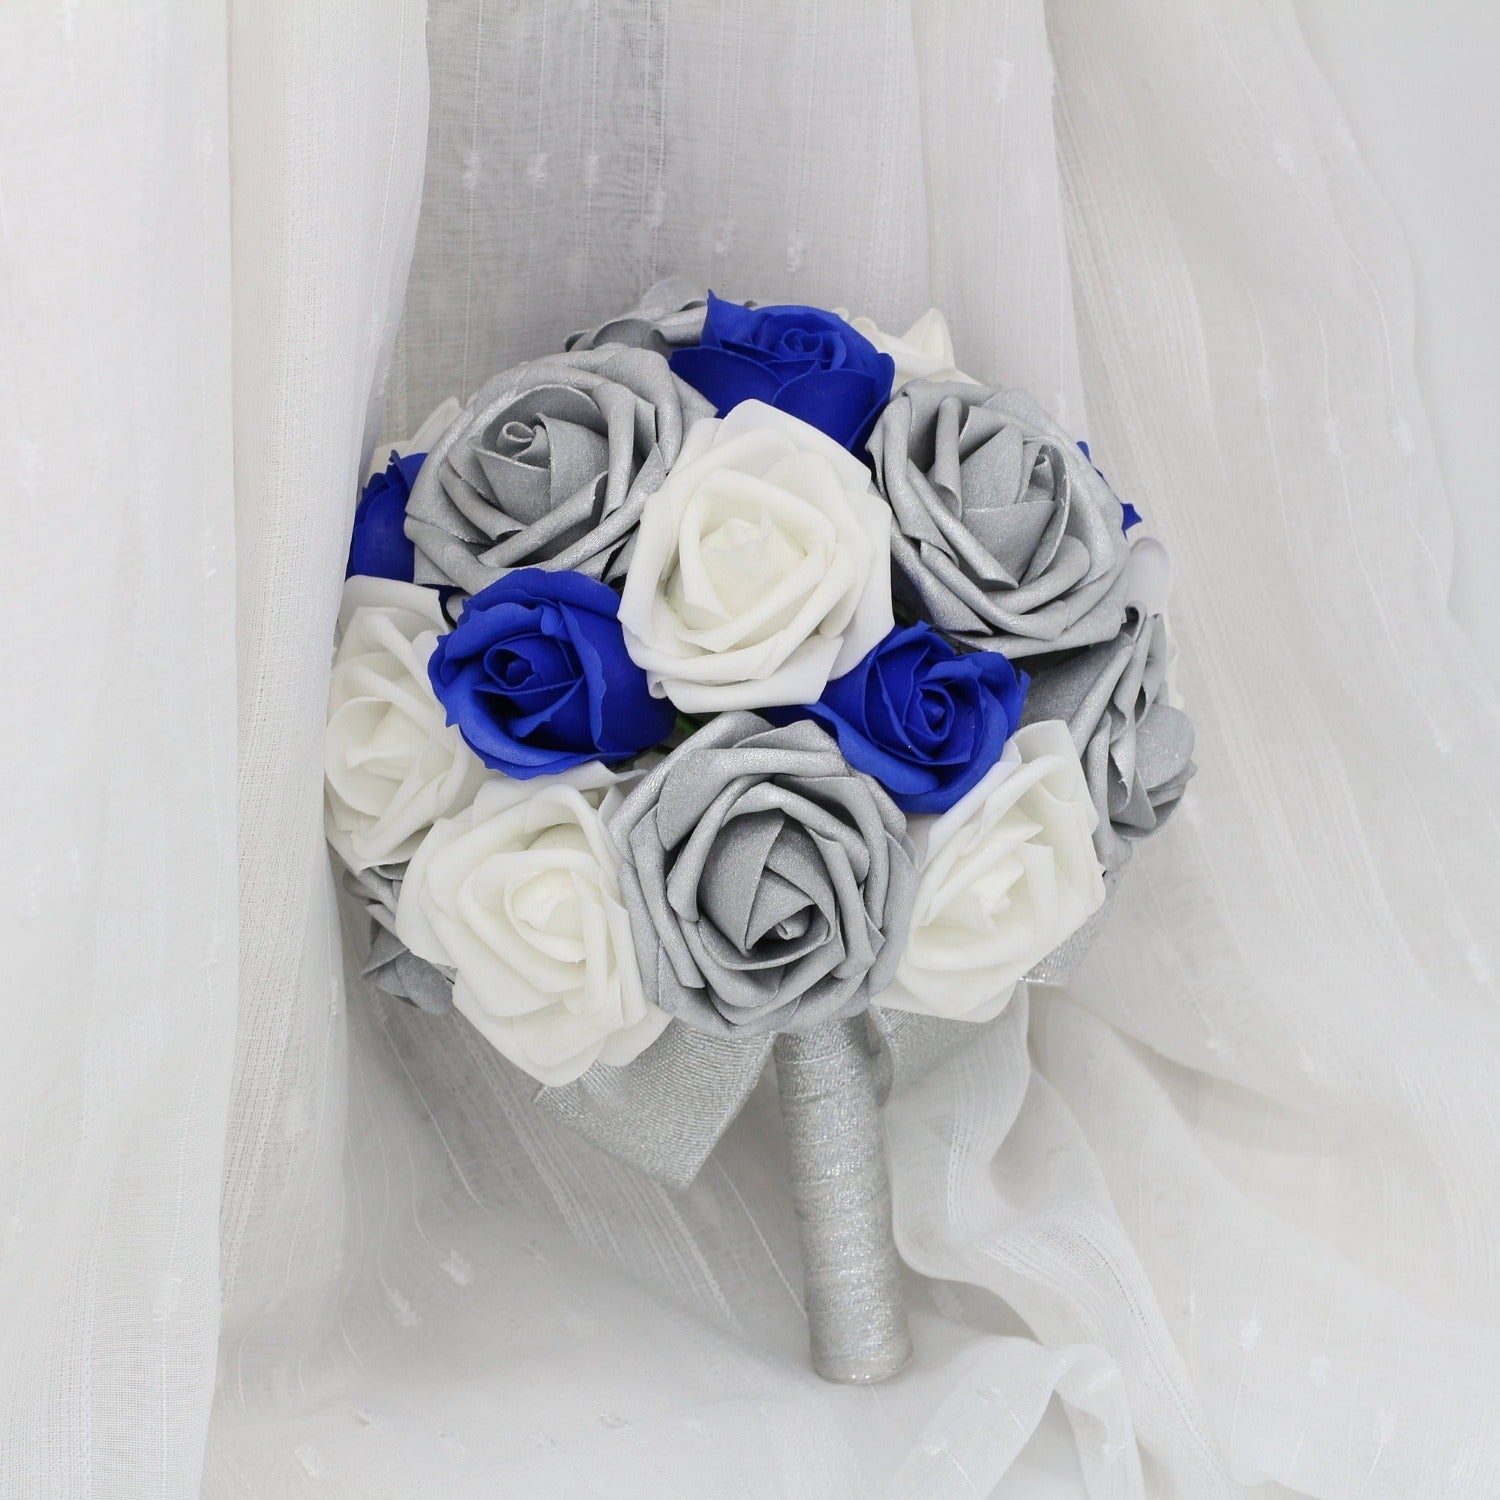 Silver White Artificial Bouquet Of Roses Royal Blue Classic Wedding Bo Vanrina